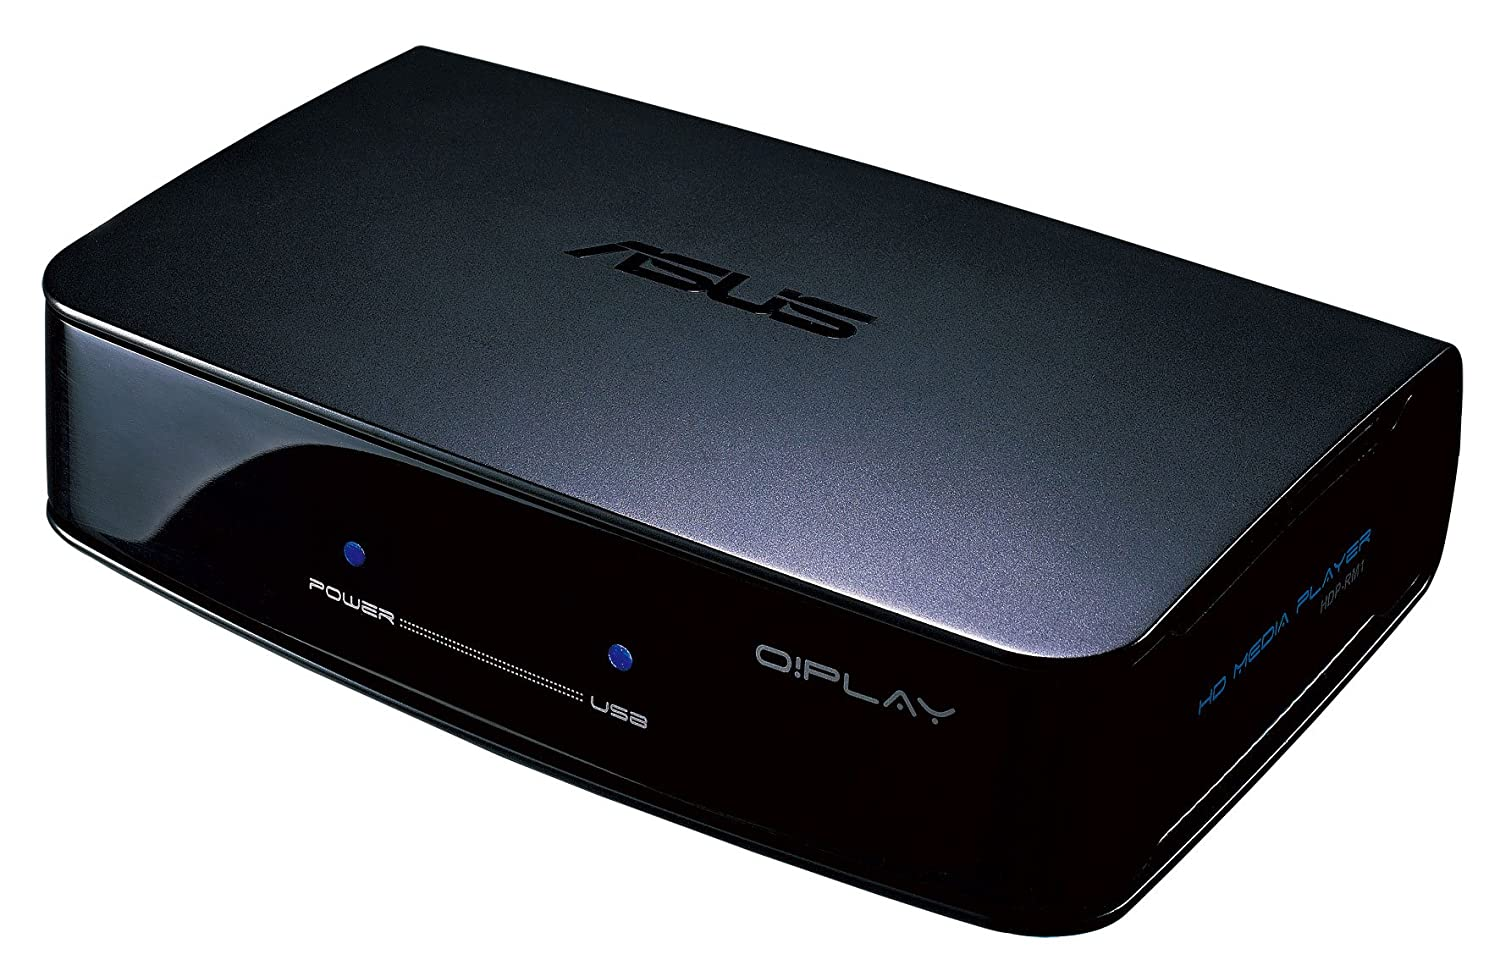 ASUS O!PLAY MEDIA PRO PLAYER DRIVERS FOR WINDOWS XP